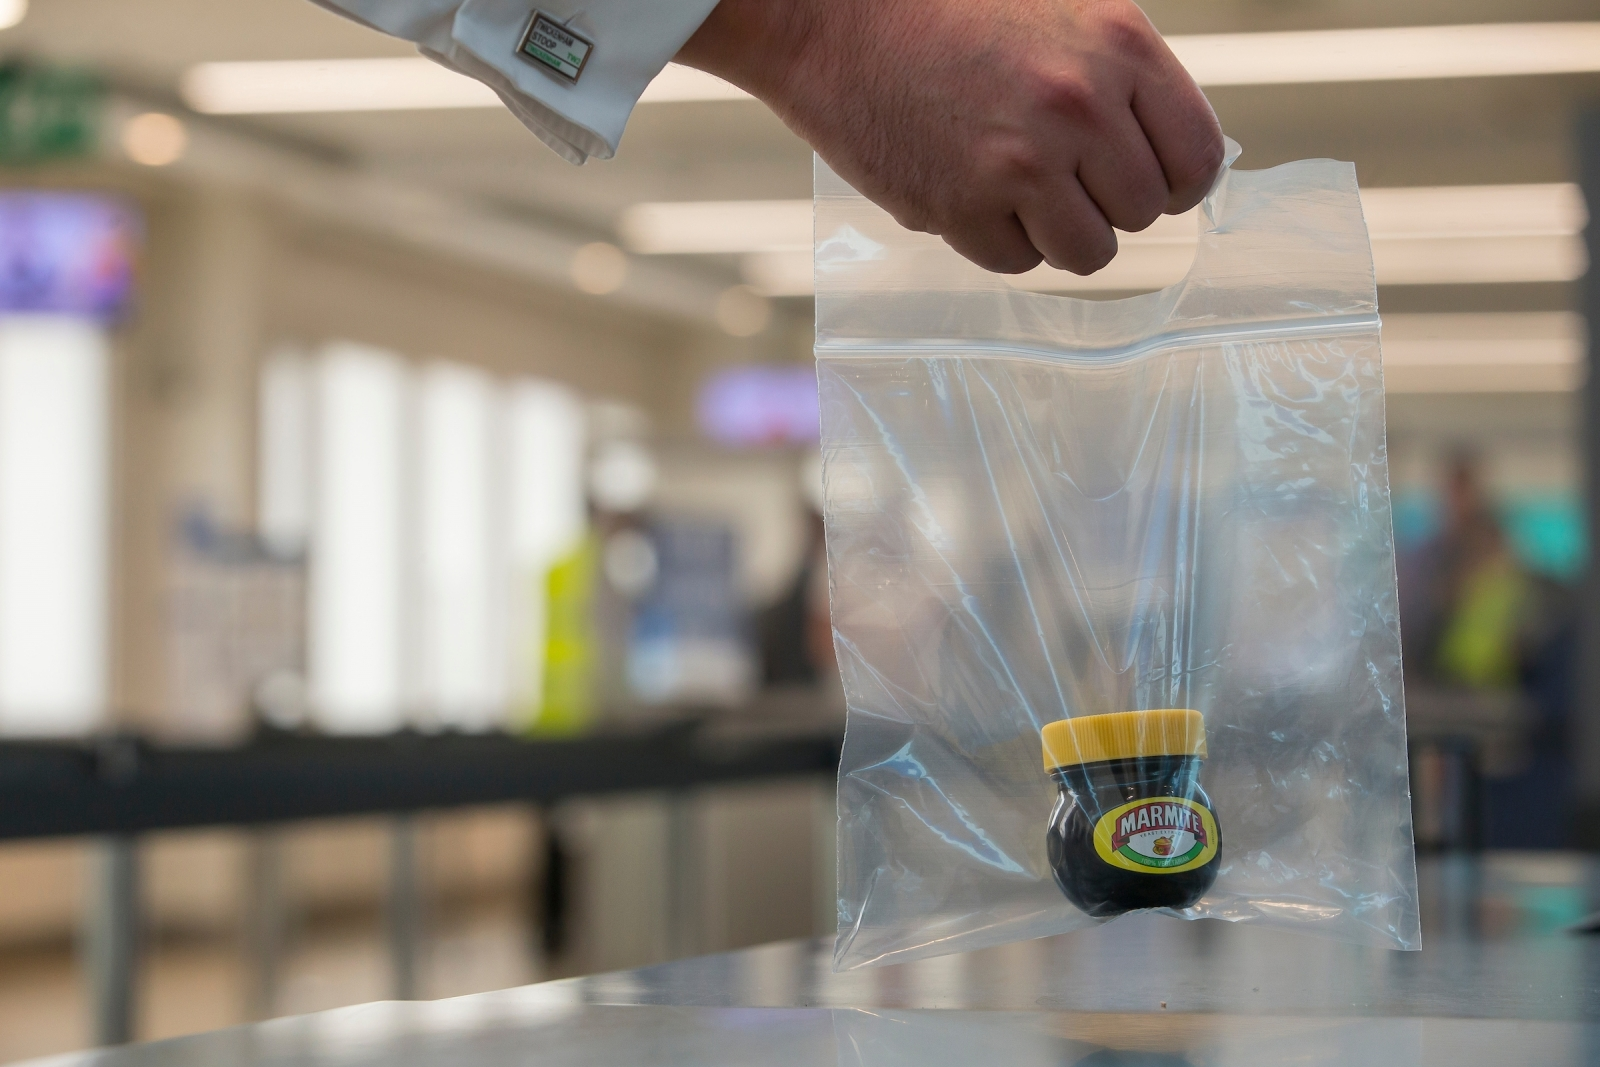 Marmite is the top branded food item confiscated items from hand luggage at London City Airport